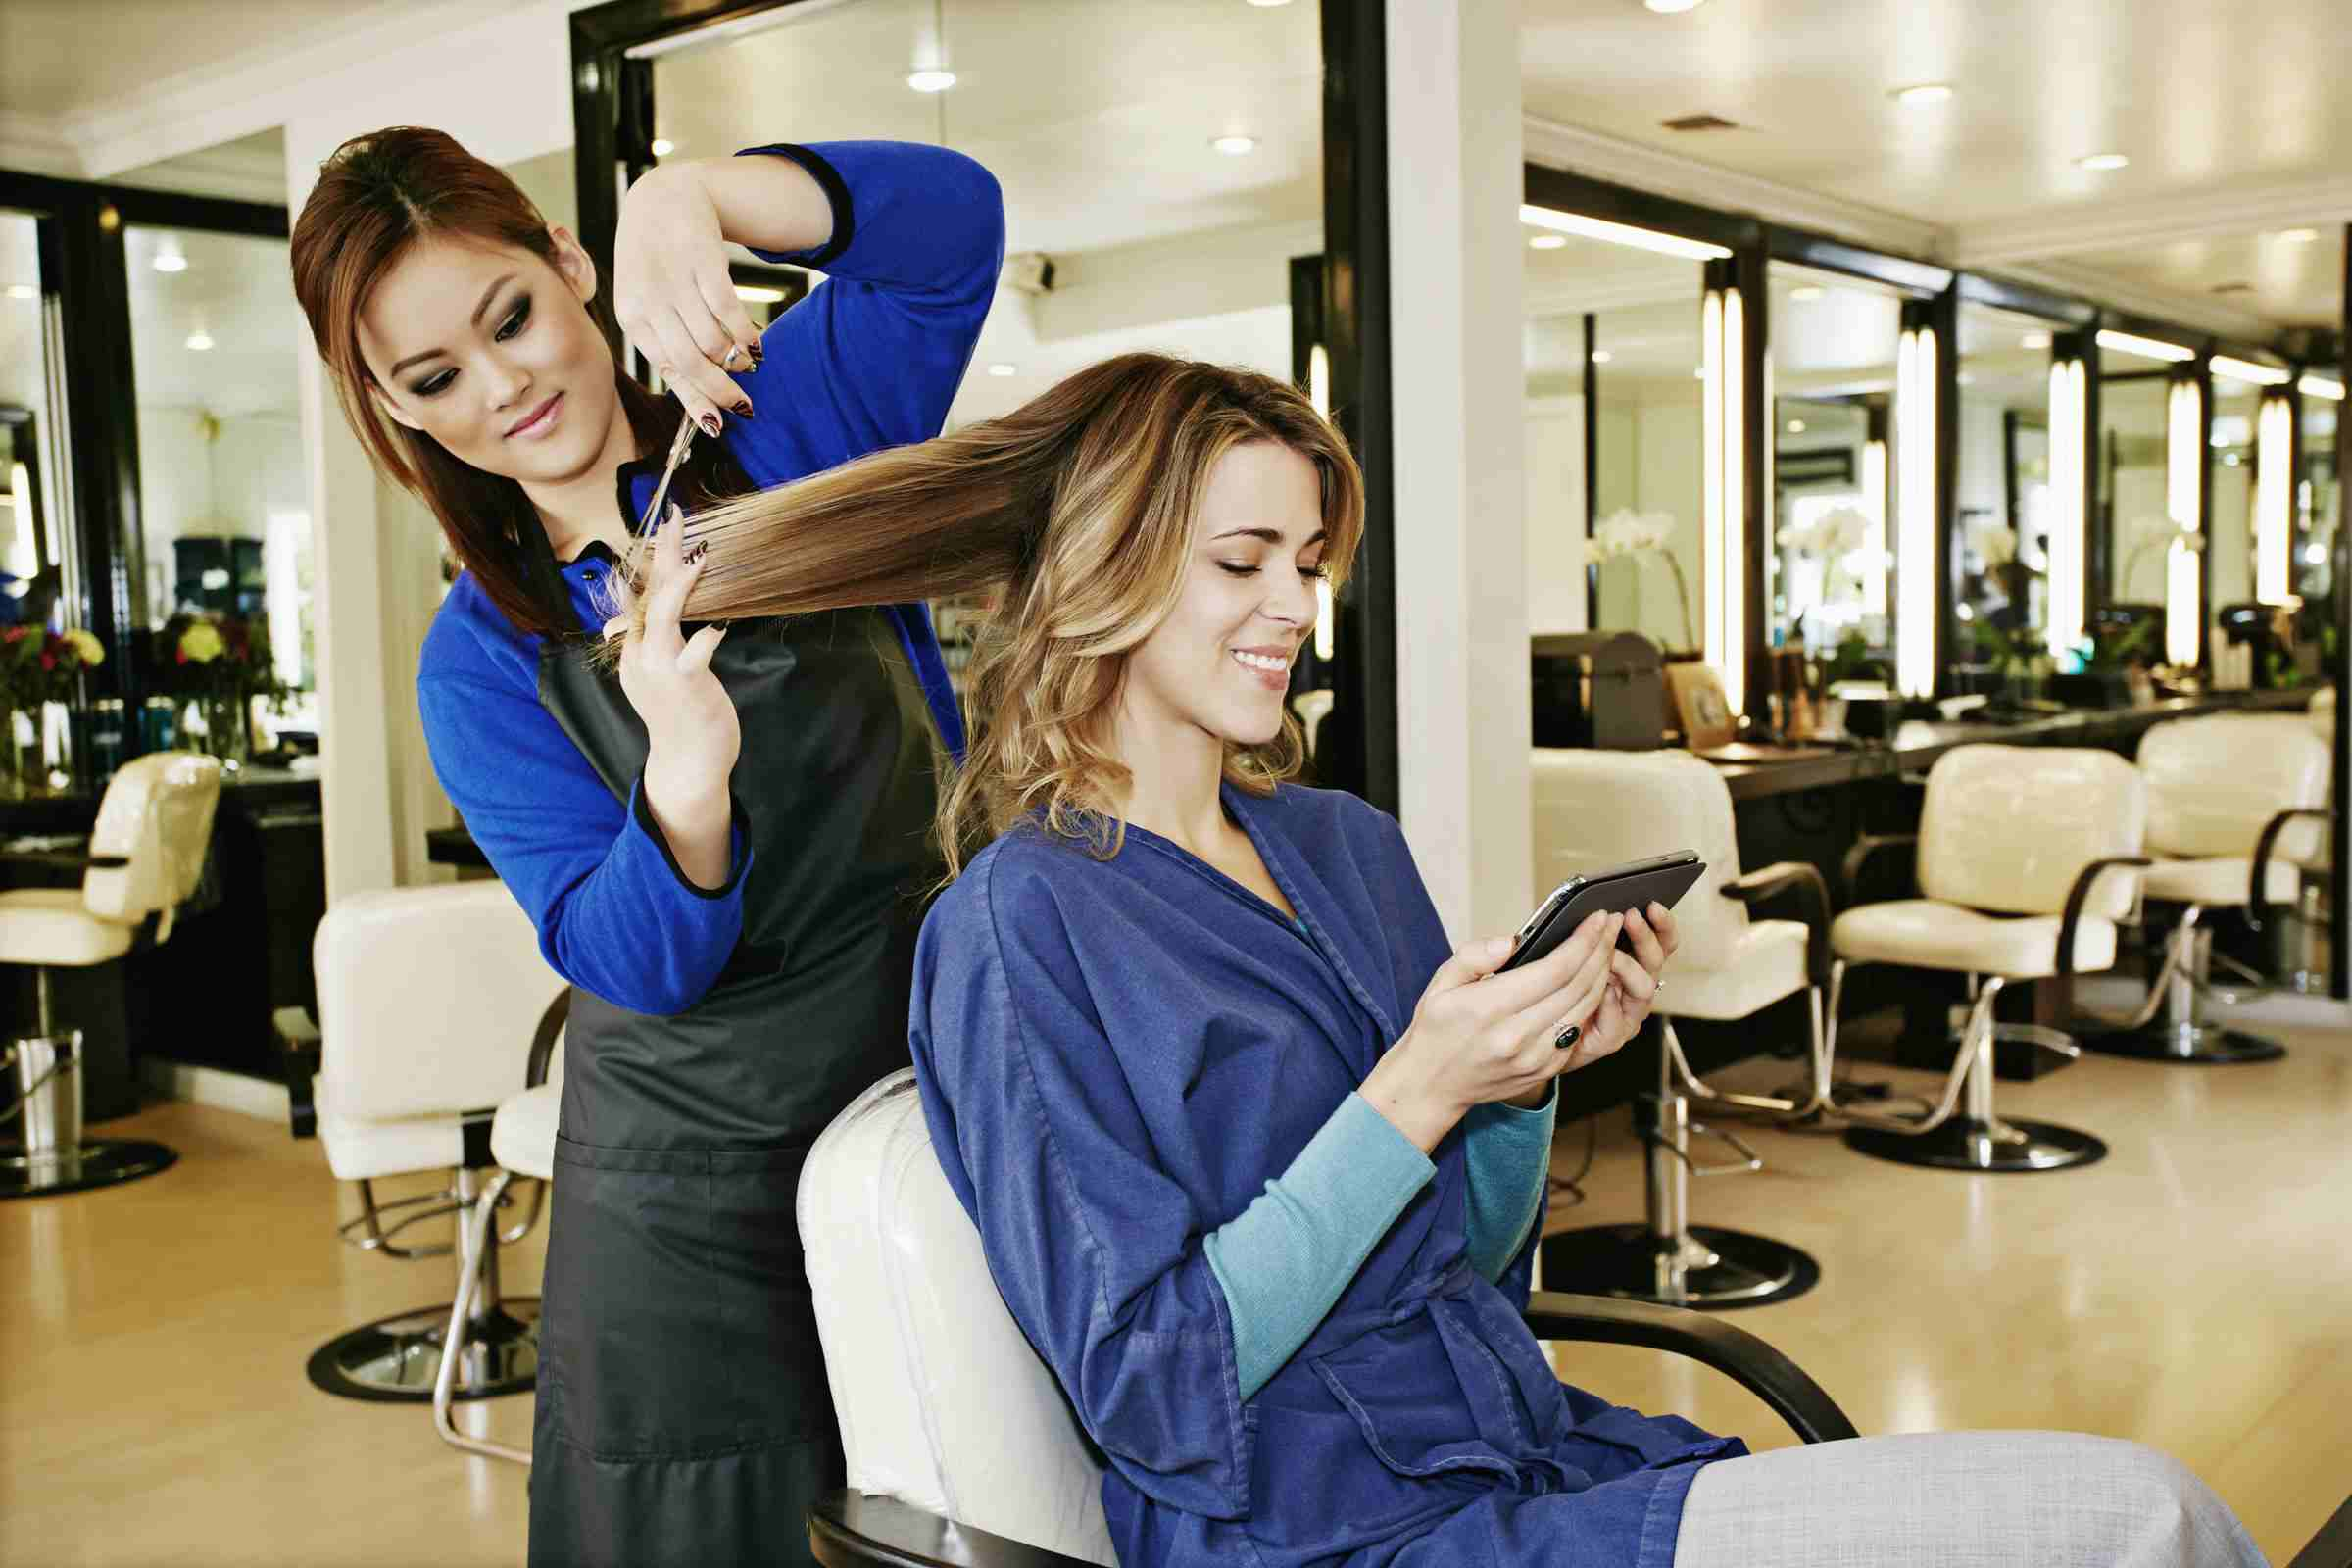 Hair stylist training certificate